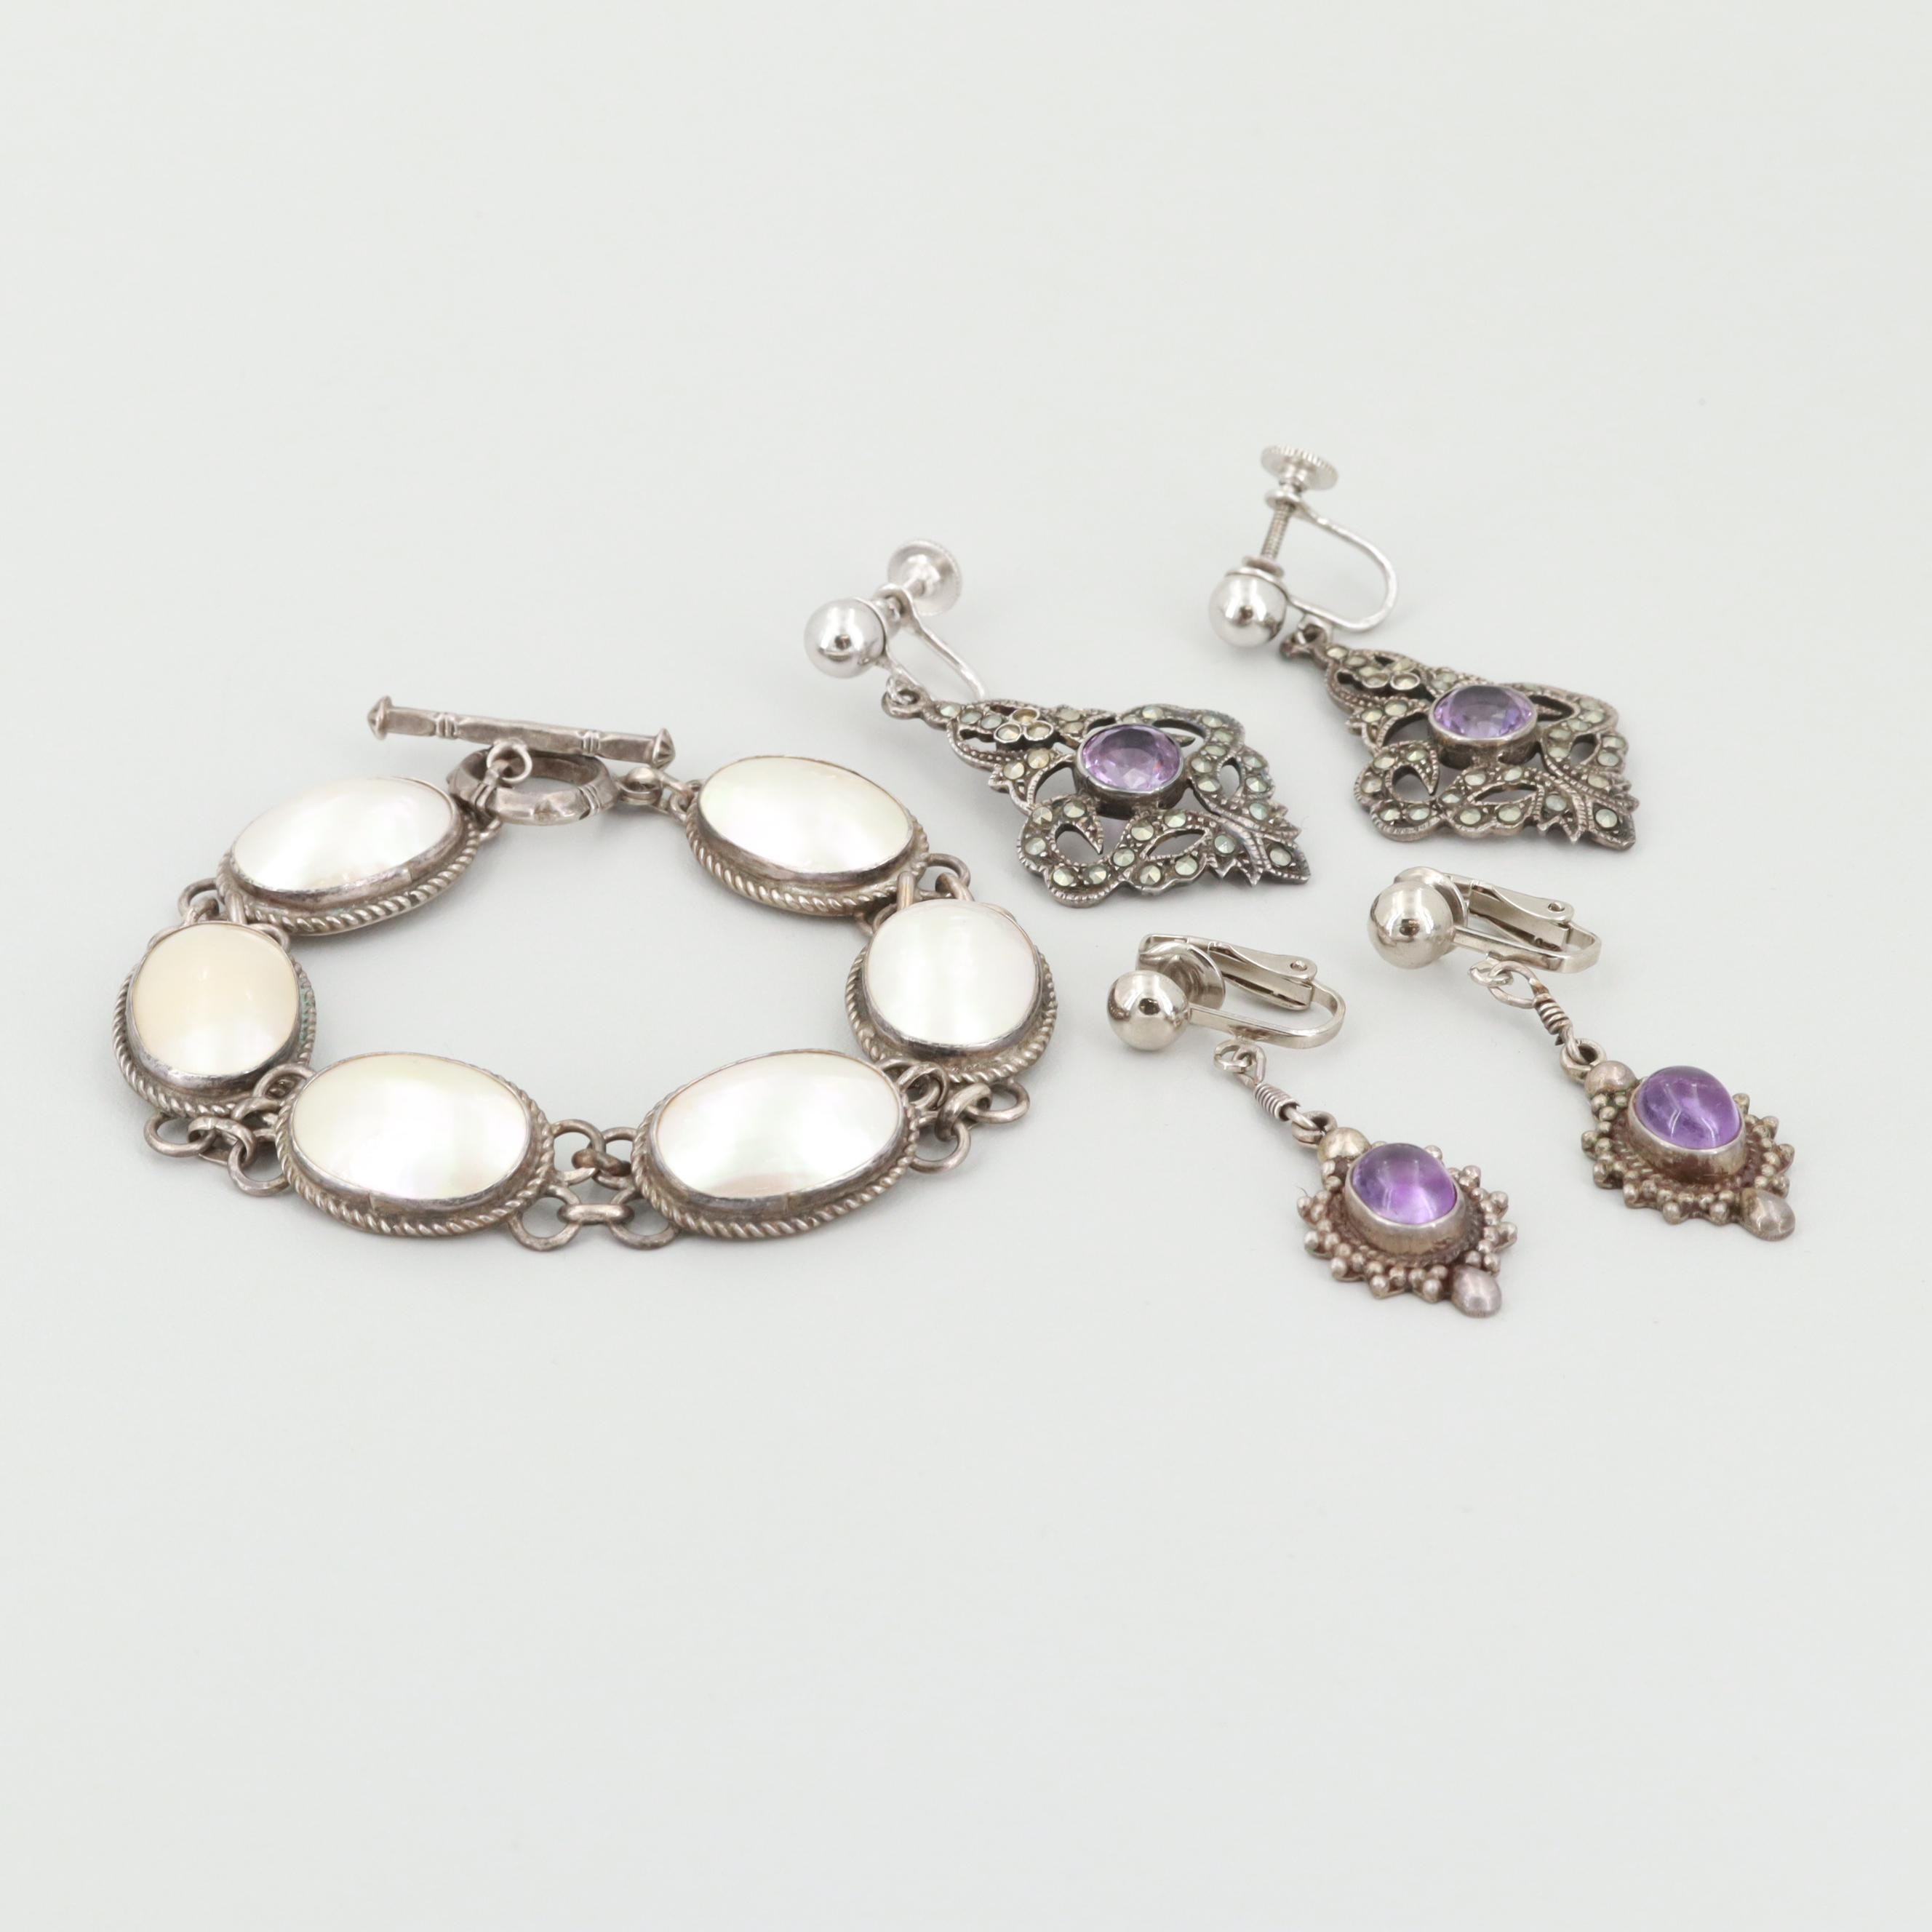 Sterling Silver Mother of Pearl, Amethyst and Marcasite Earrings and Bracelet